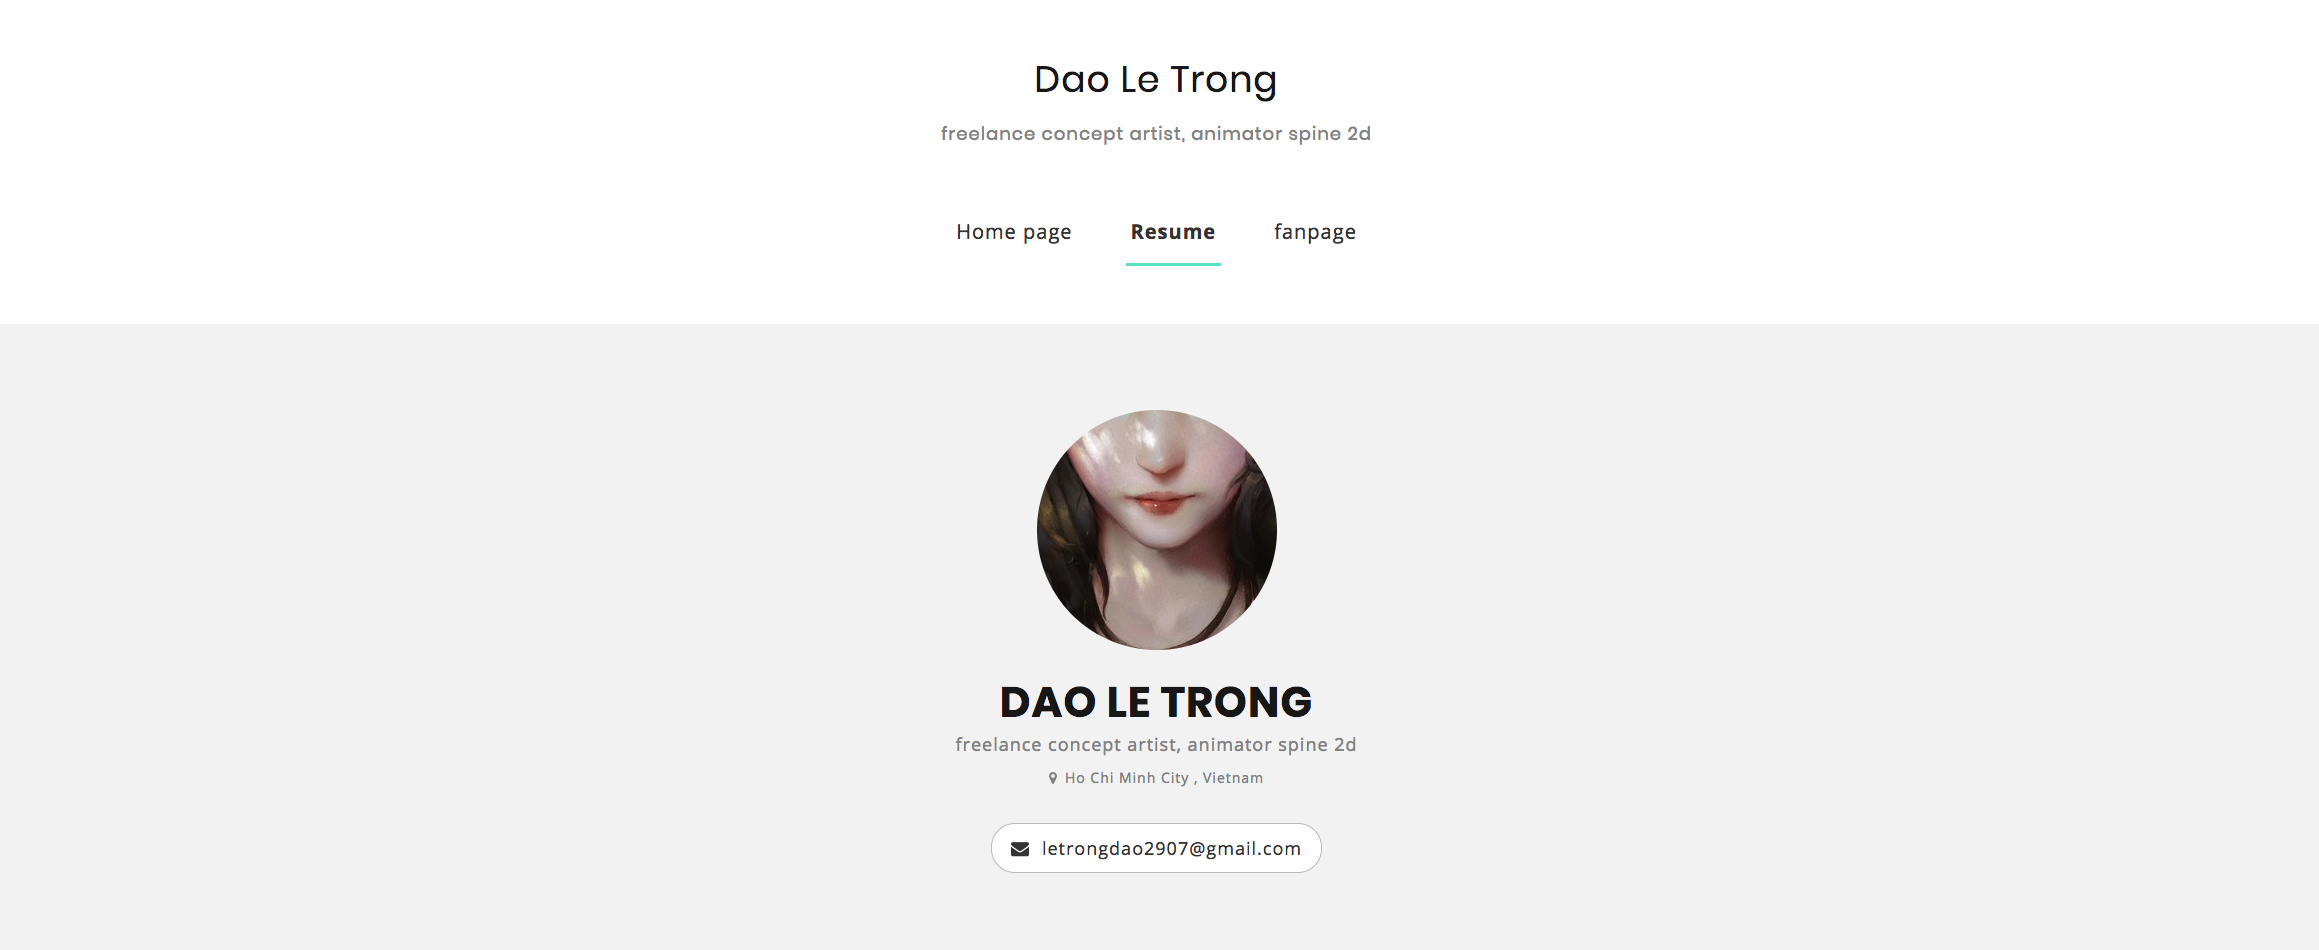 Featured Pro Portfolio: Dao Le Trong - ArtStation Magazine